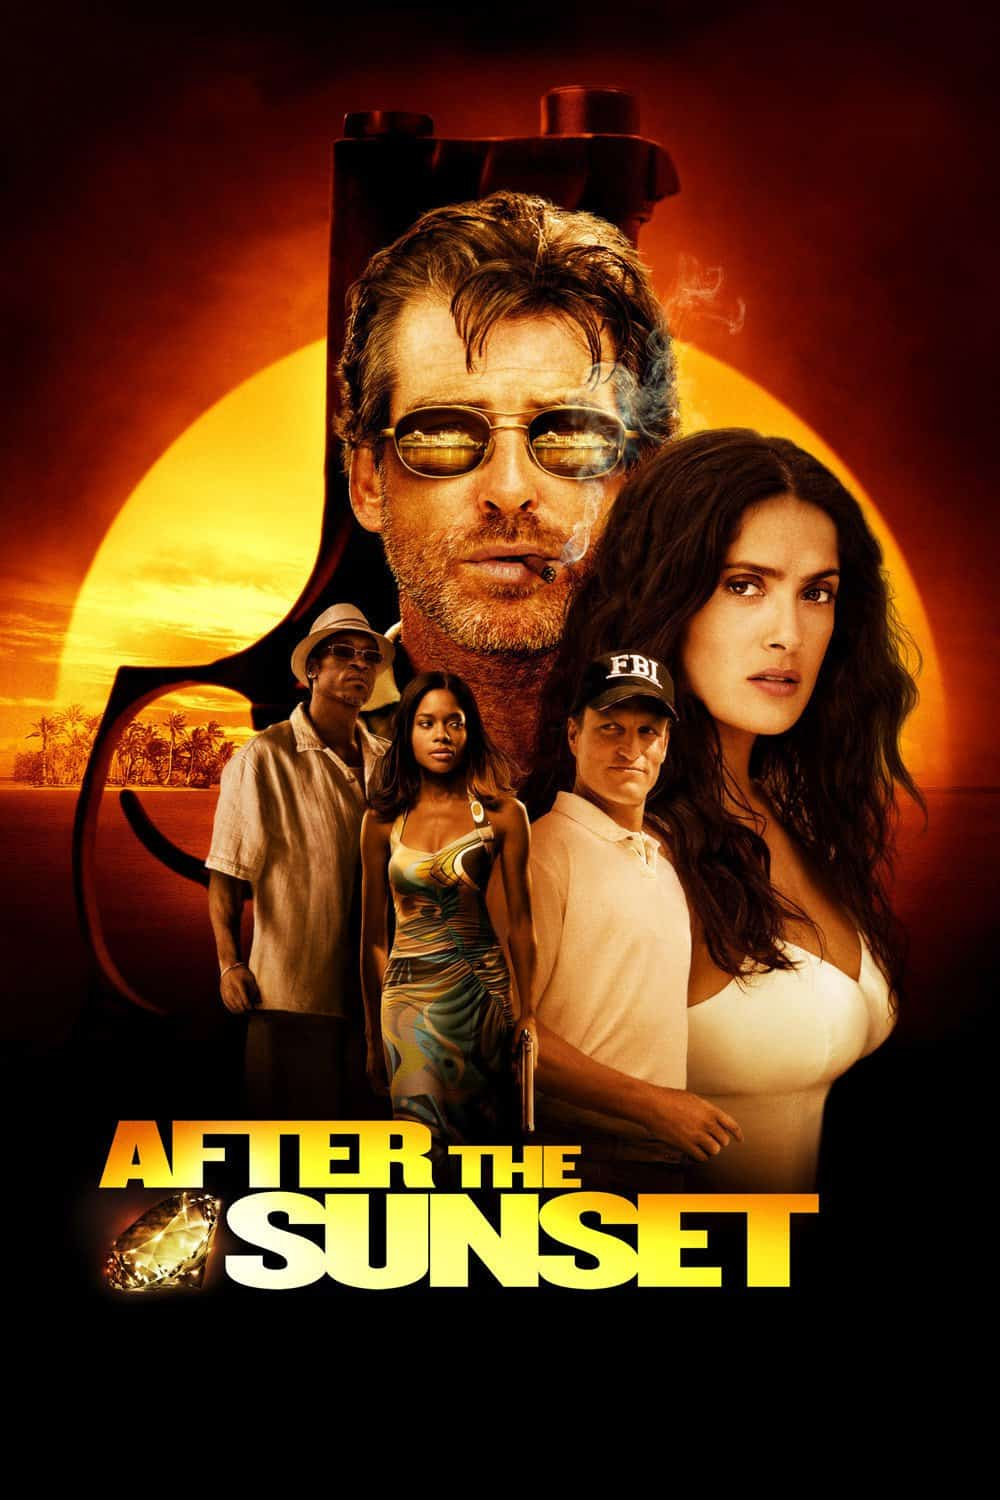 After the Sunset, 2004